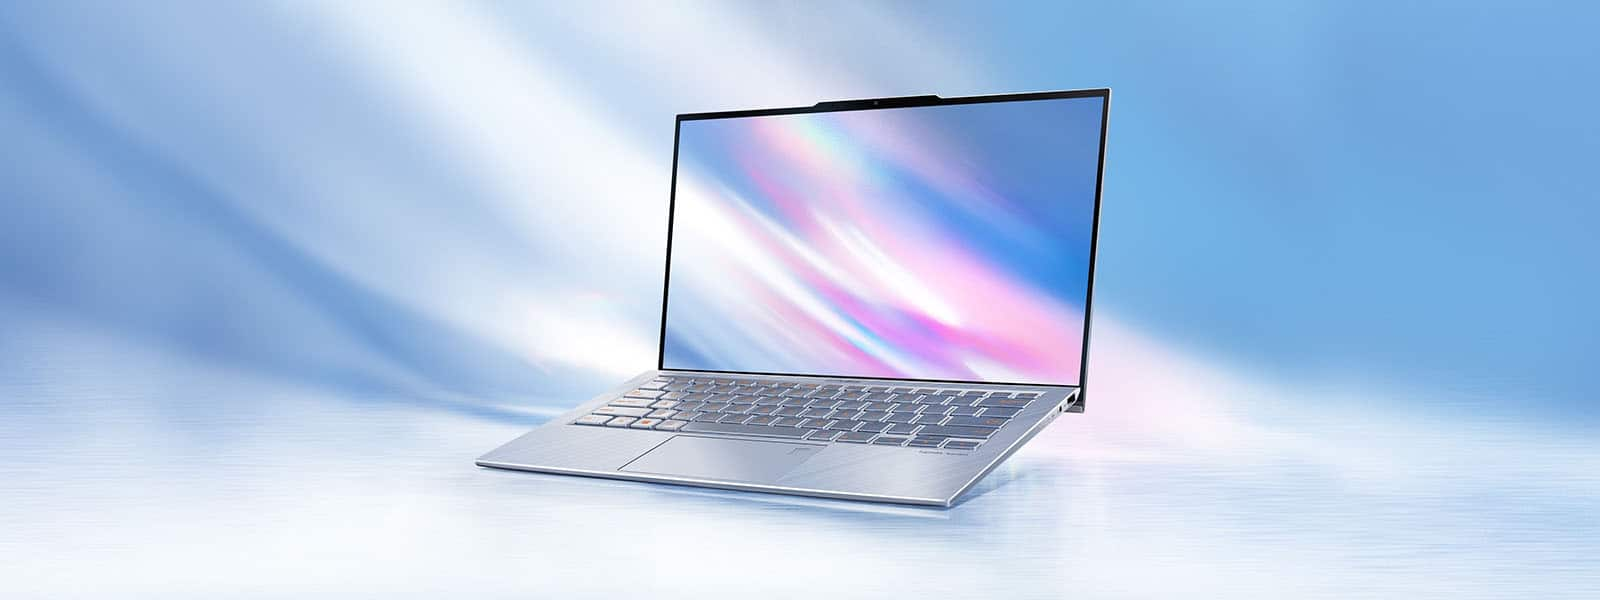 asus zenbook s13 ux392fn - the most compact 13.9 inch laptop